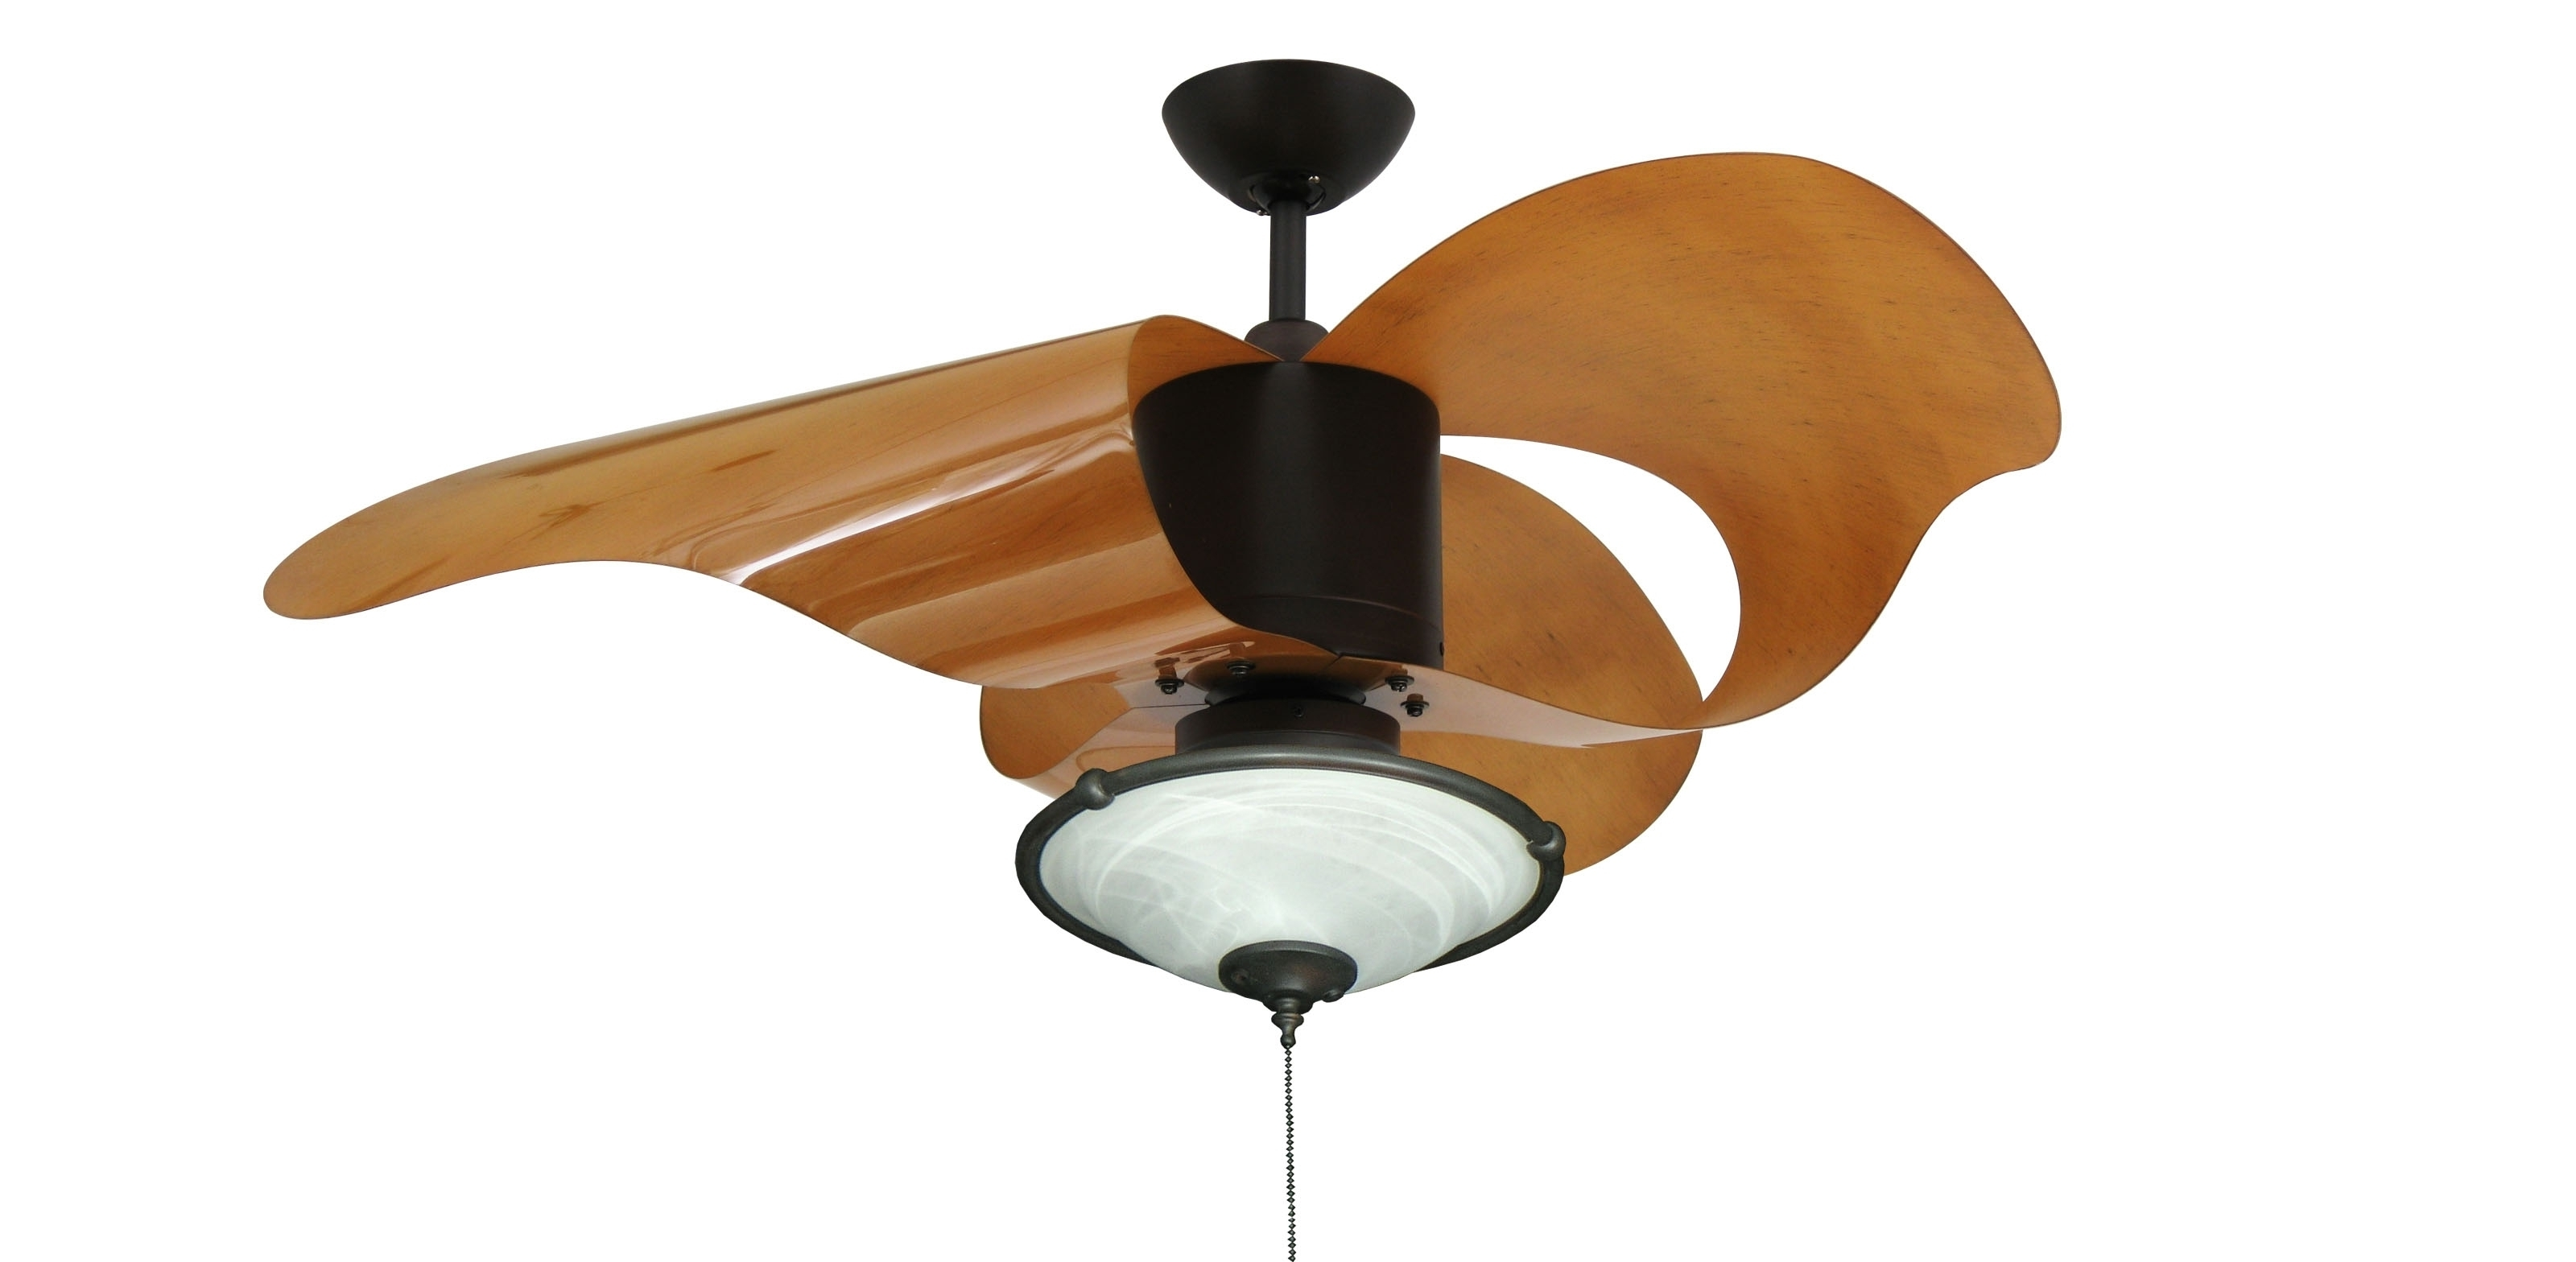 Modern Outdoor Ceiling Fans 52 Antique White Large Room, Modern Pertaining To Favorite Modern Outdoor Ceiling Fans With Lights (View 16 of 20)